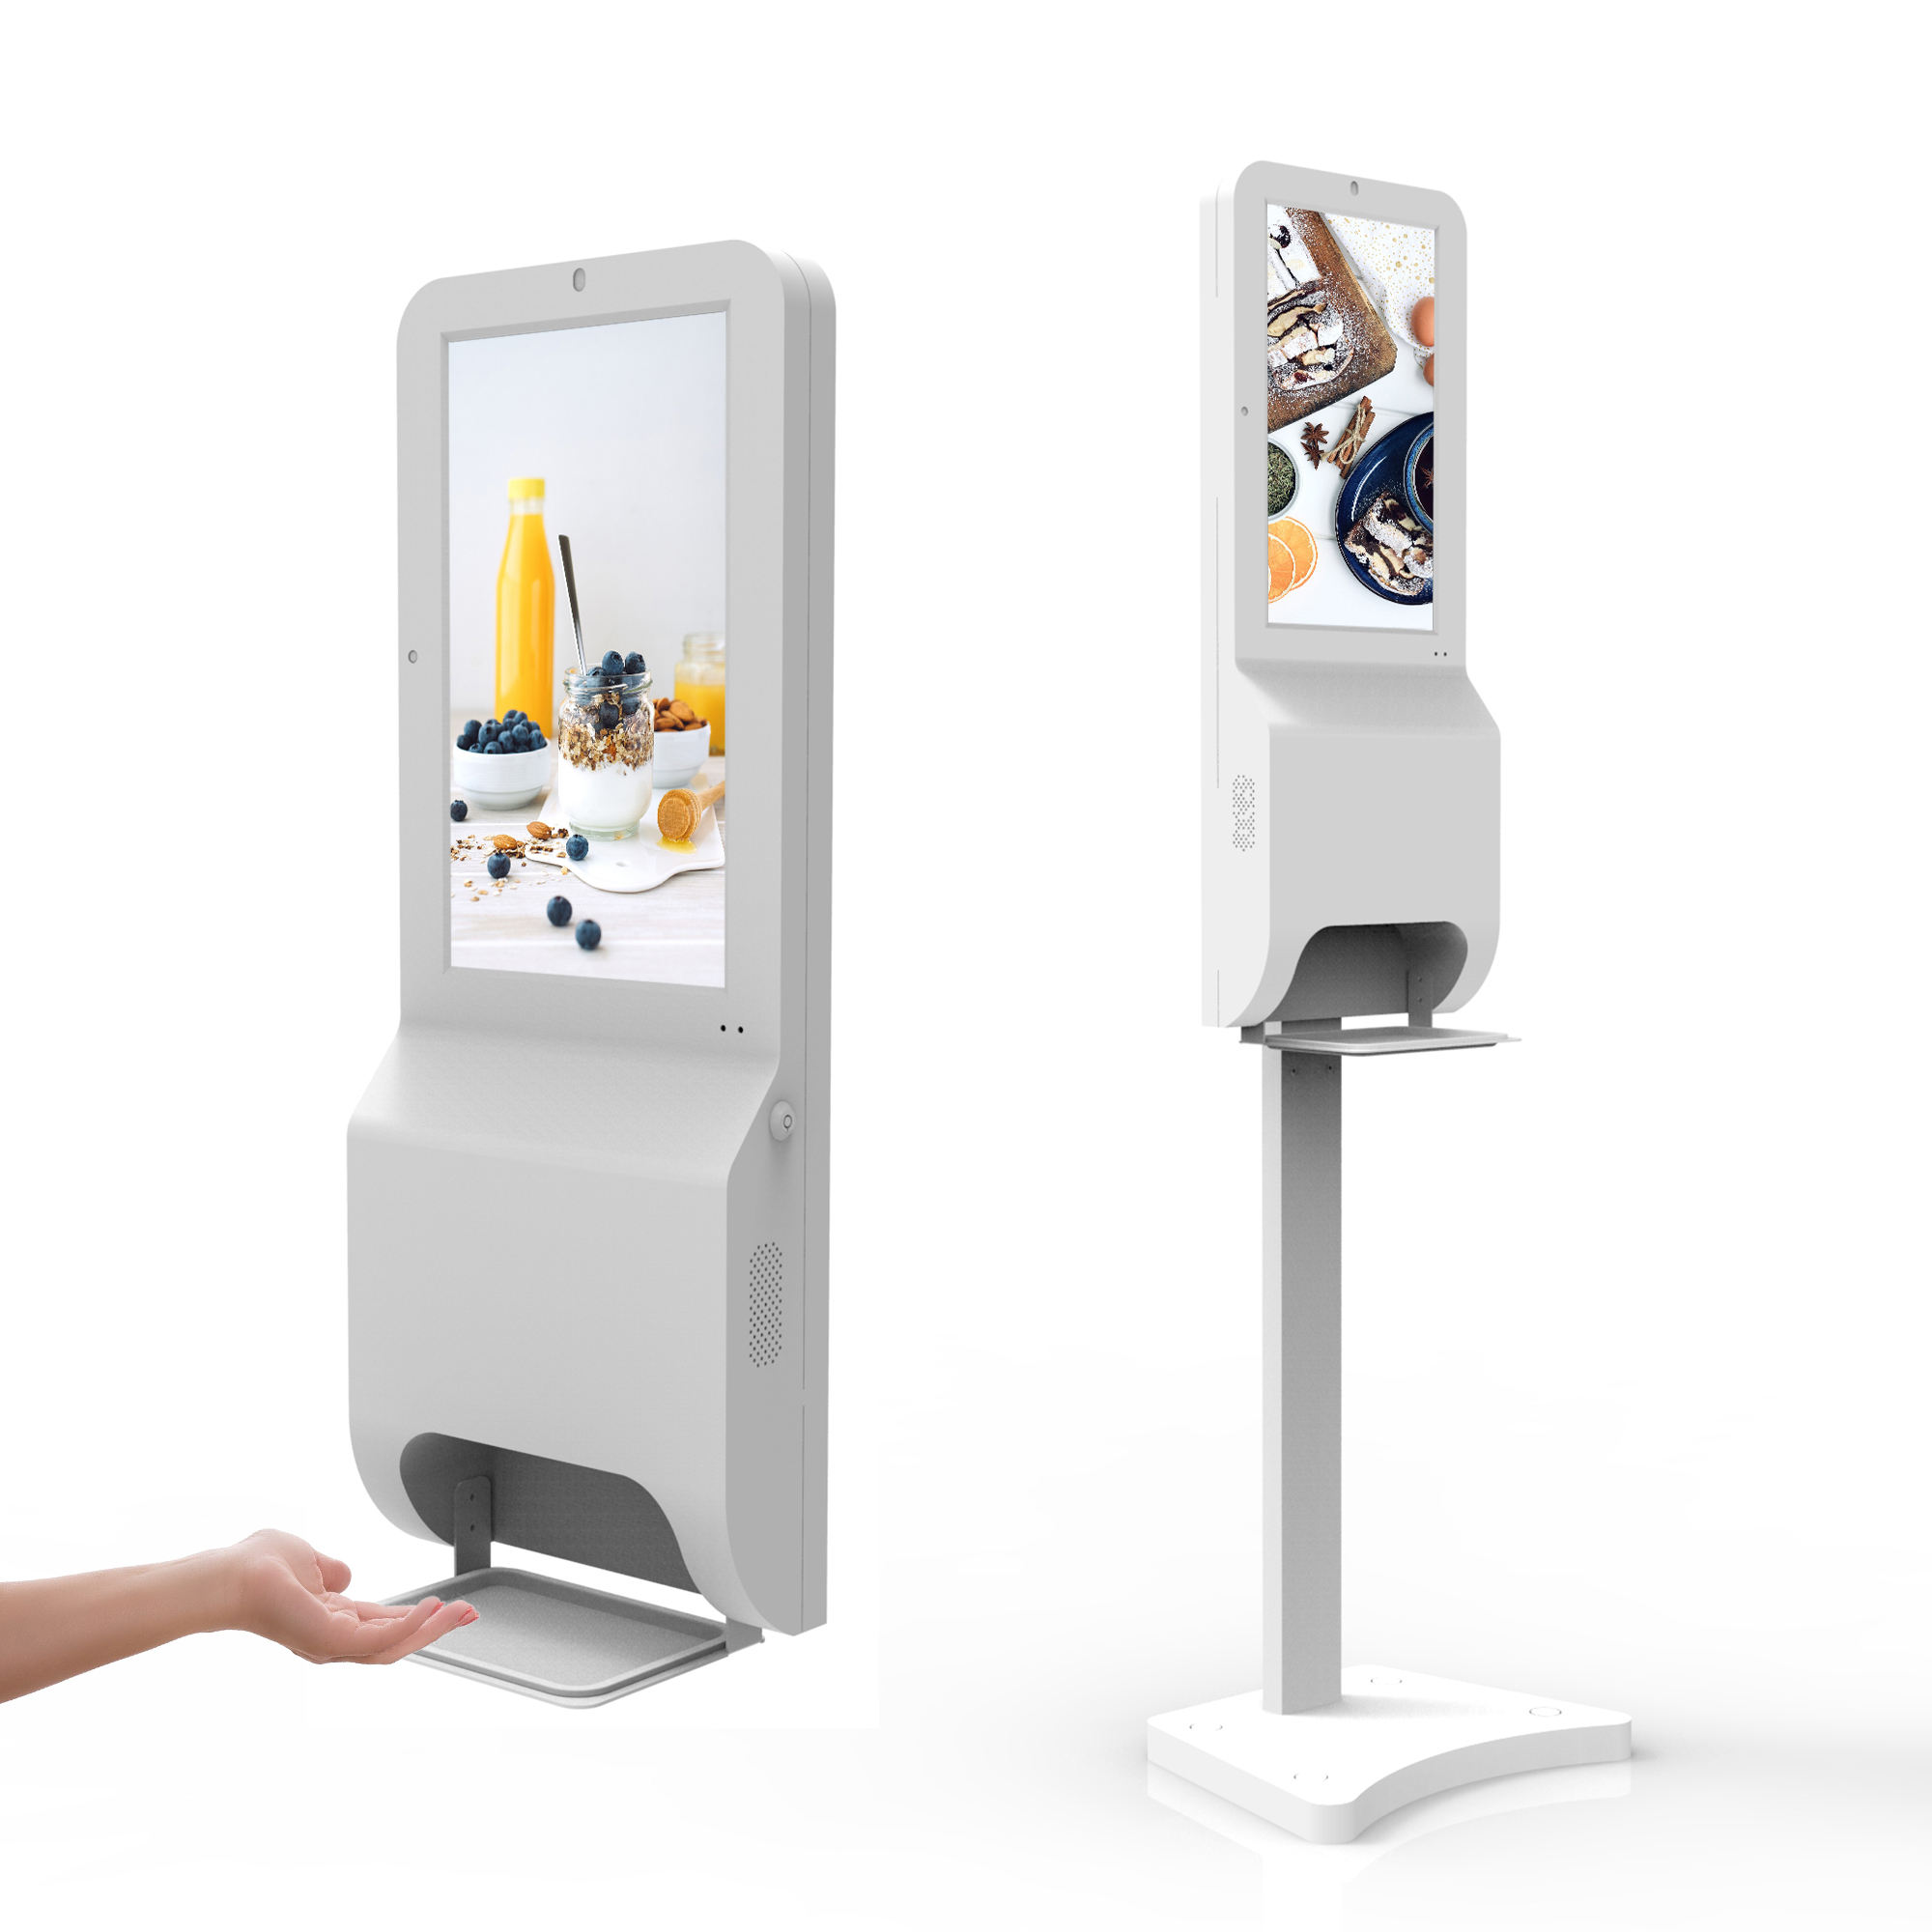 21.5 inch floor stand digital signage with hand sanitizers dispenser